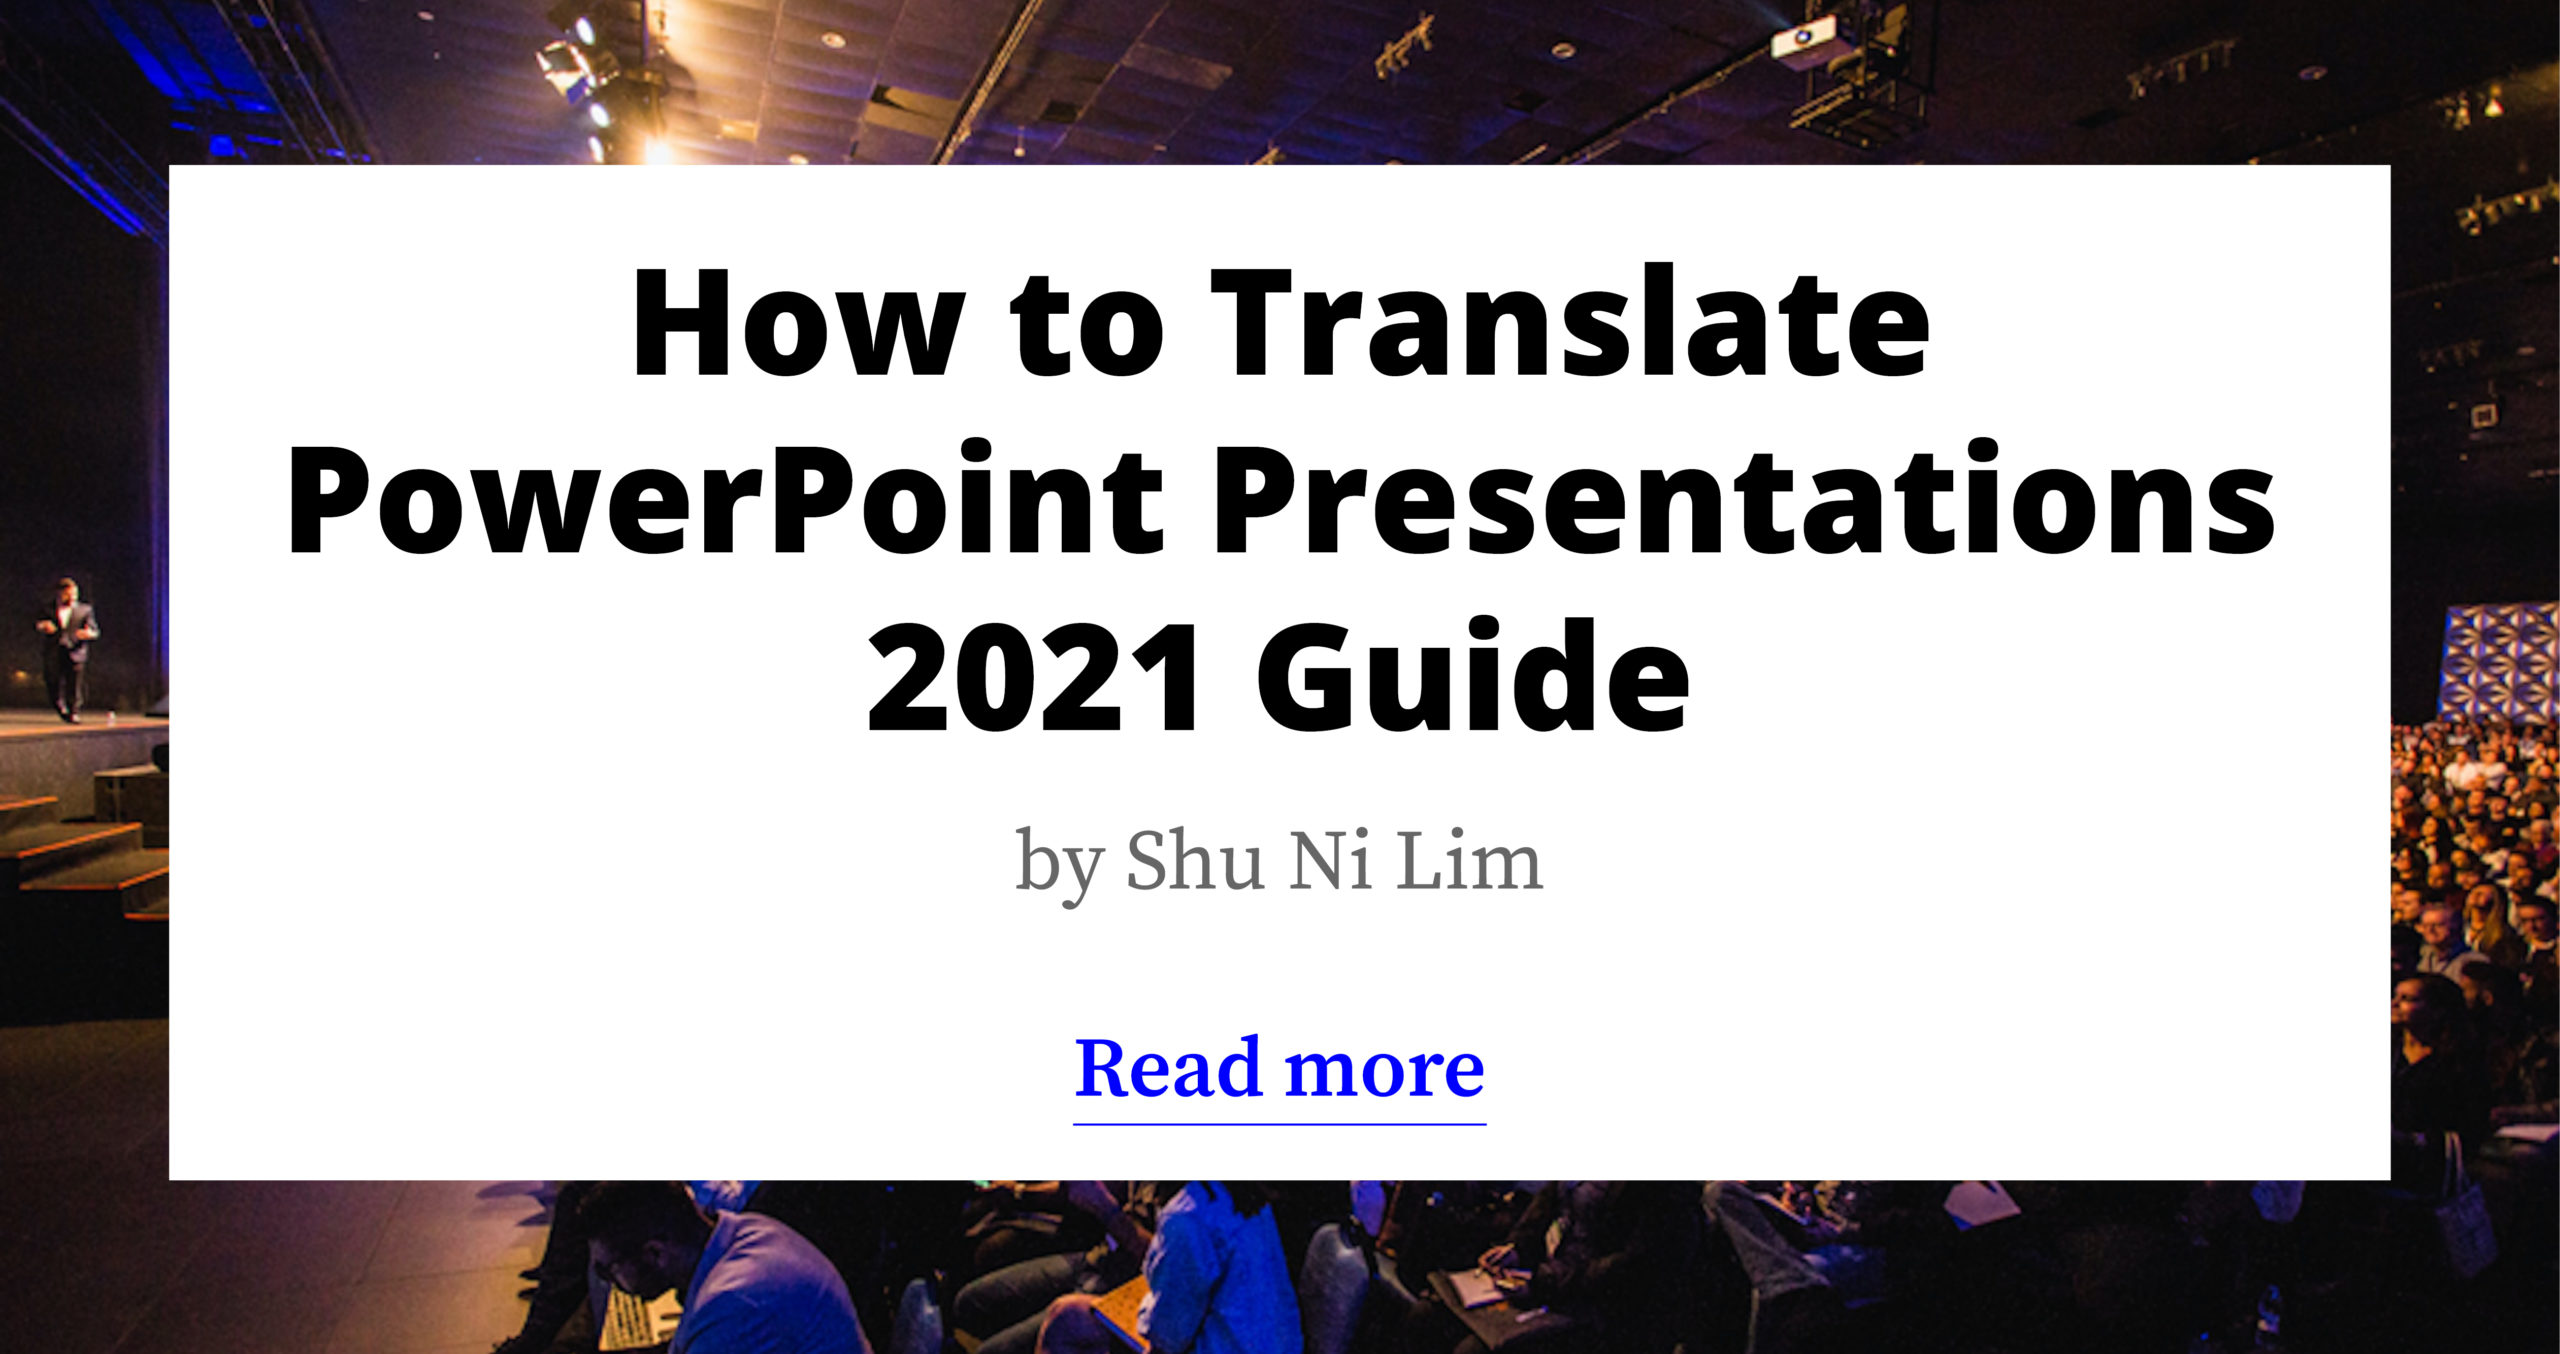 How to Translate PowerPoint Presentations - 2021 Guide